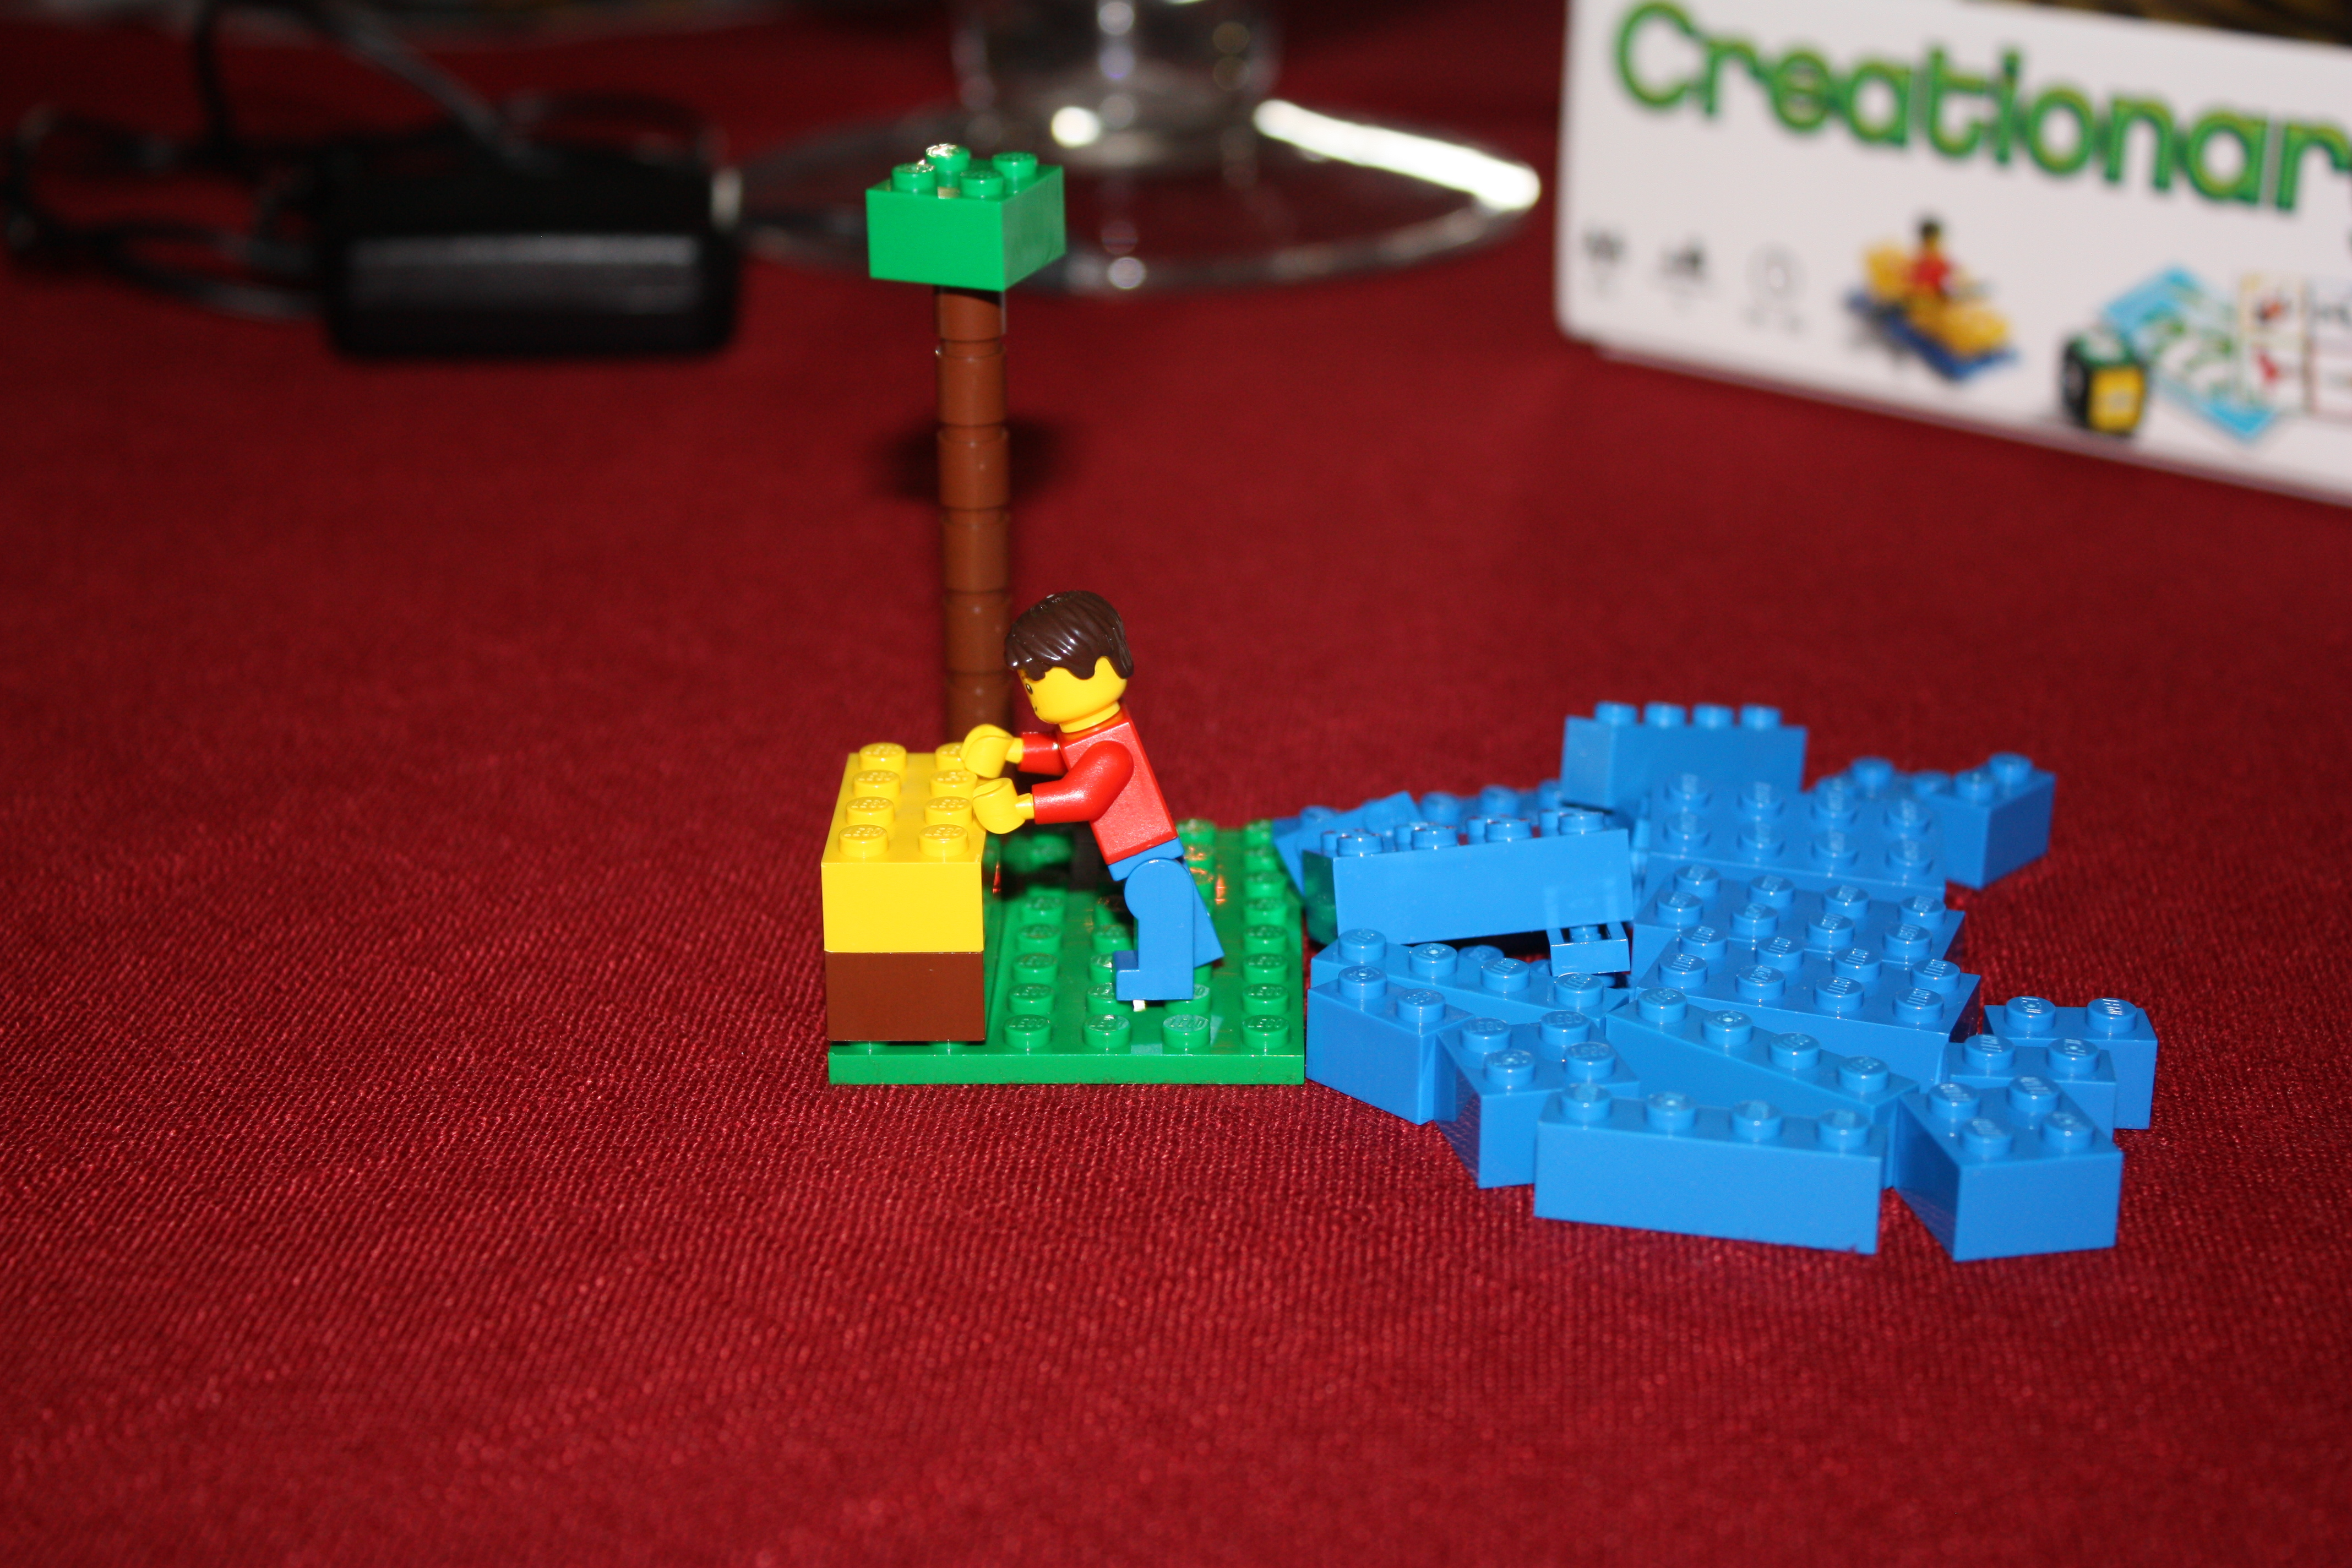 Lego Creationary creation